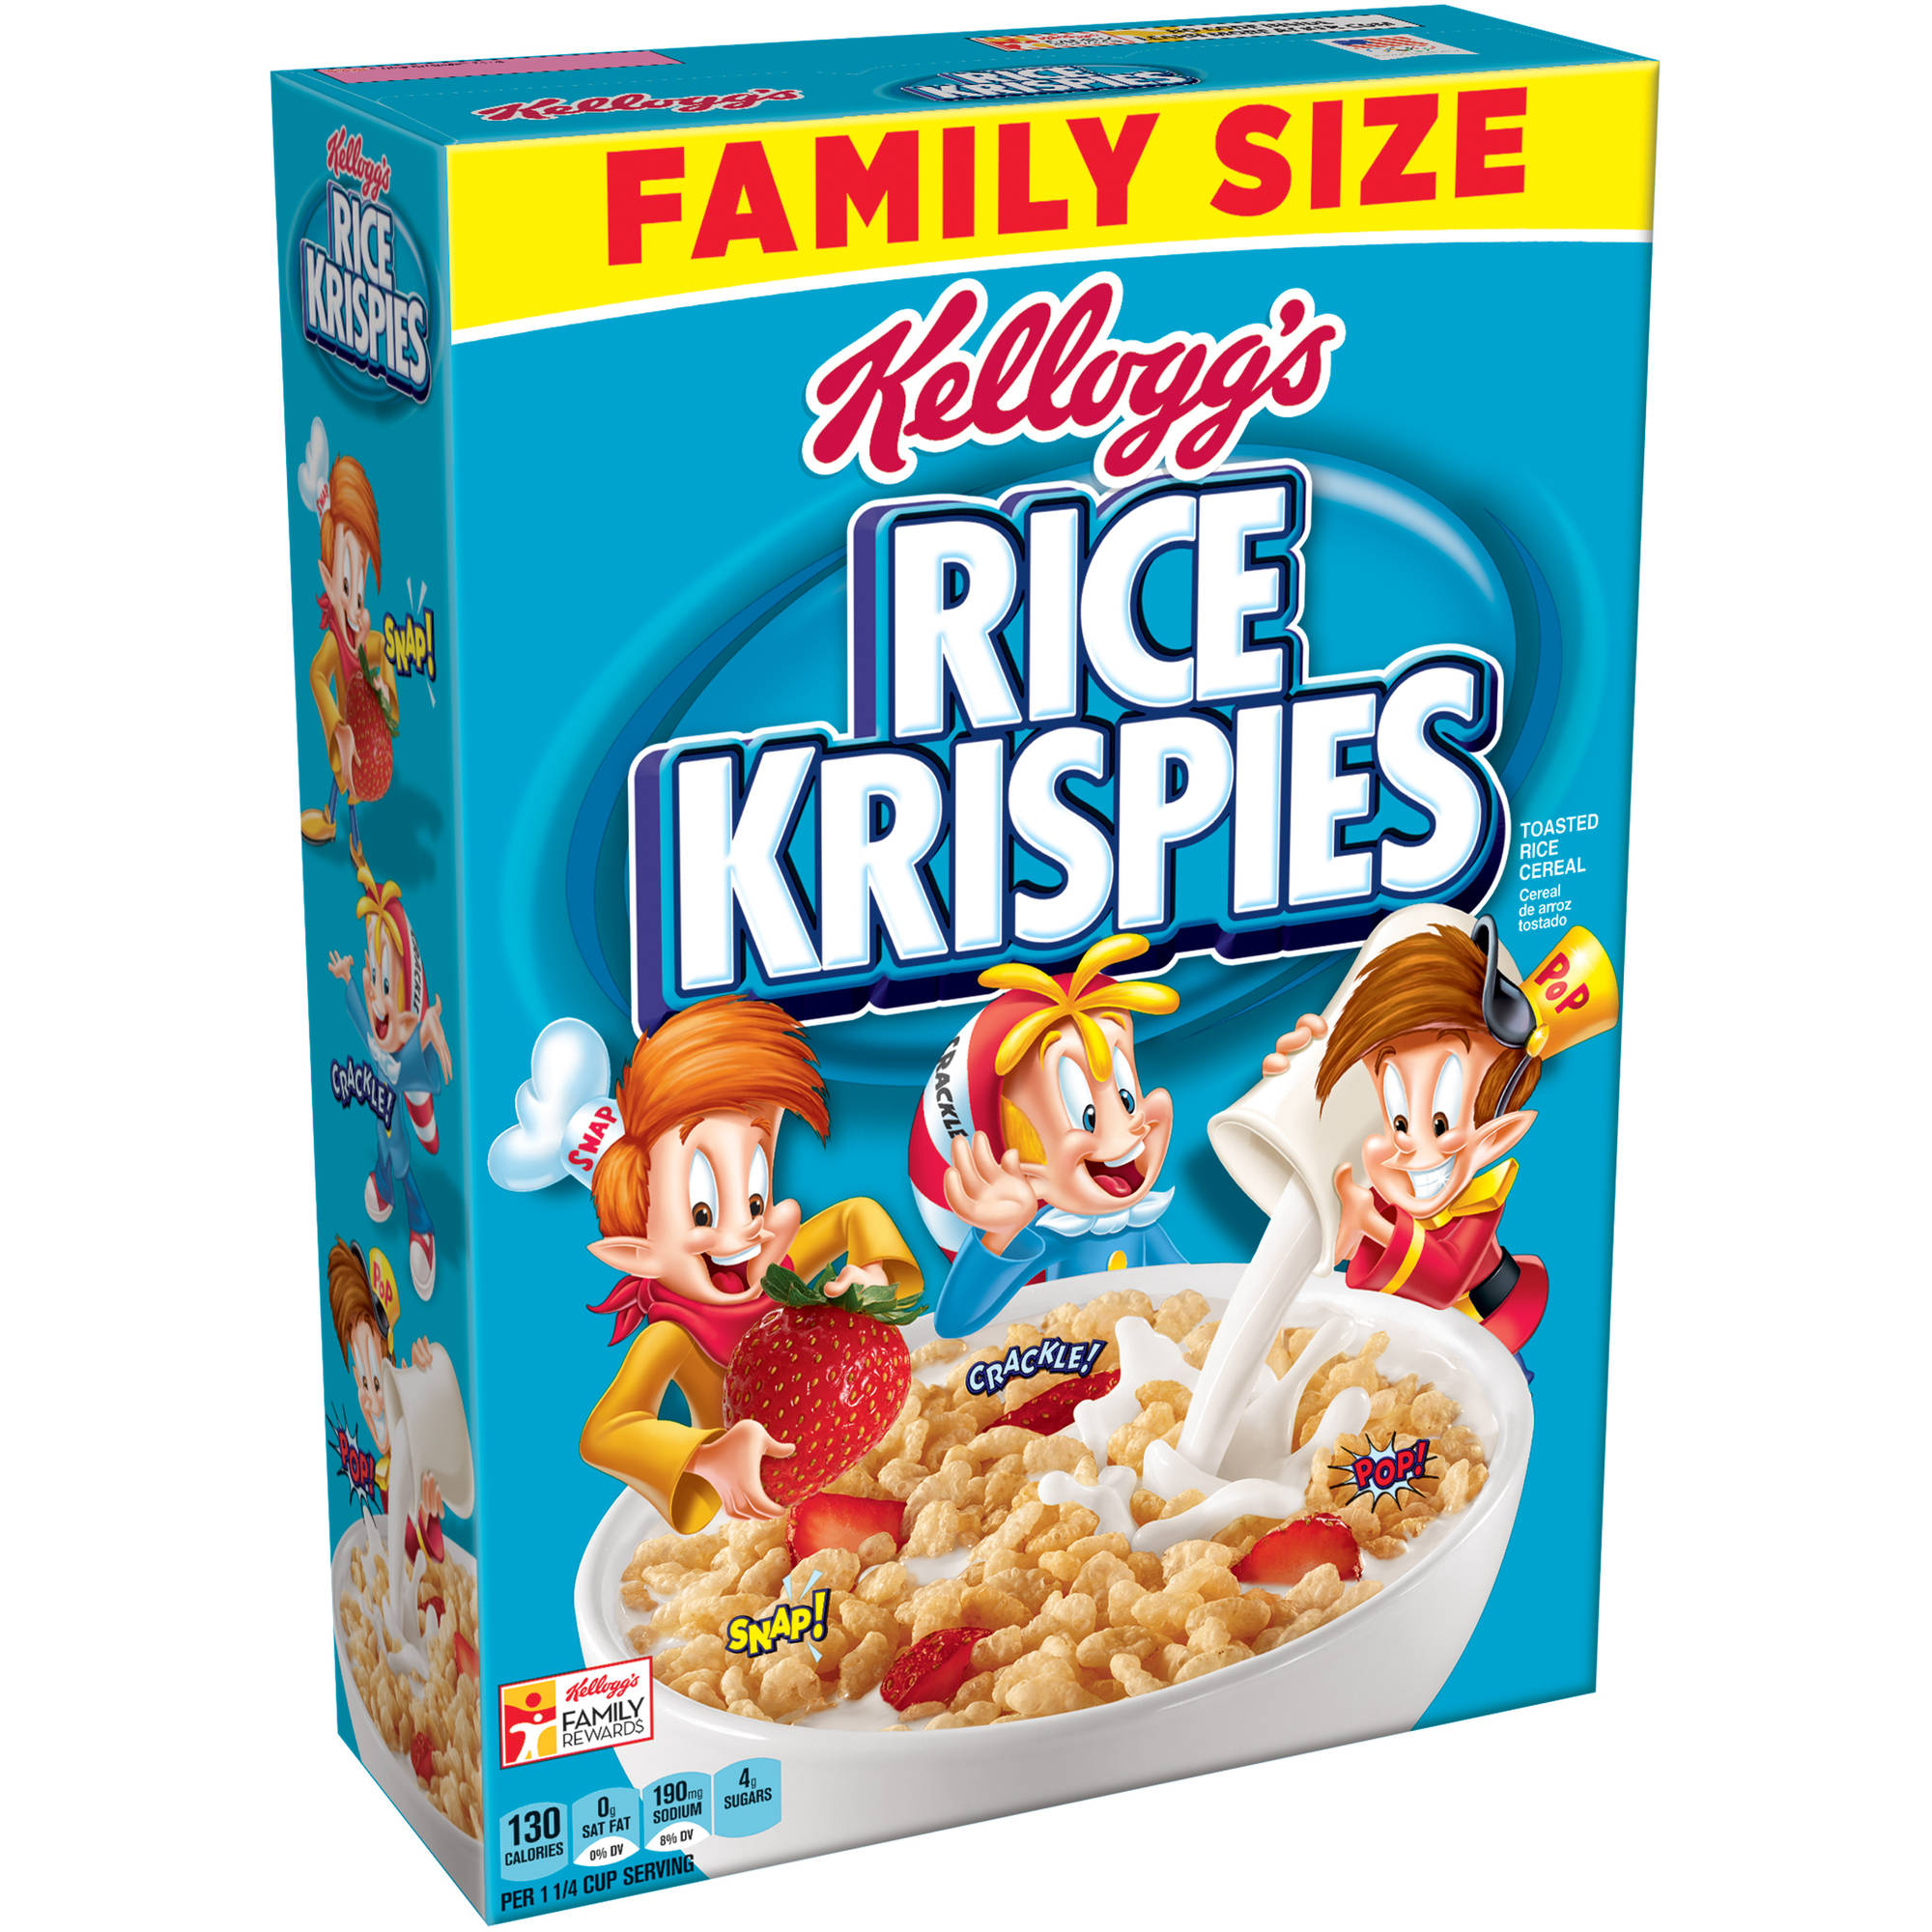 Kellogg's Rice Krispies Cereal Family Size, 24 ounce